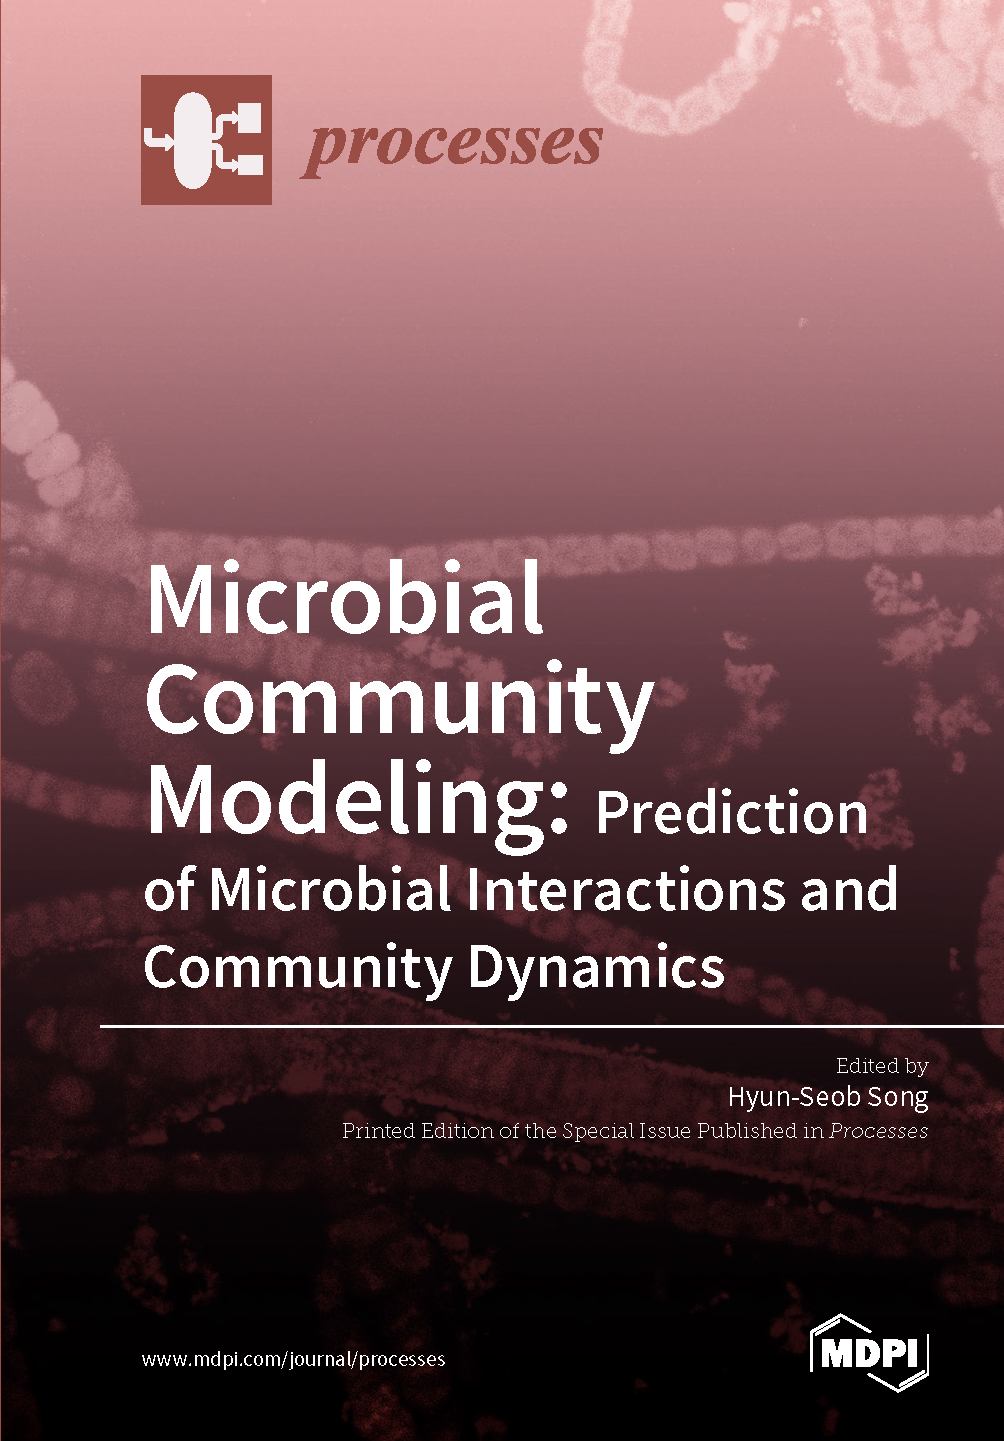 Microbial Community Modeling: Prediction of Microbial Interactions and Community Dynamics